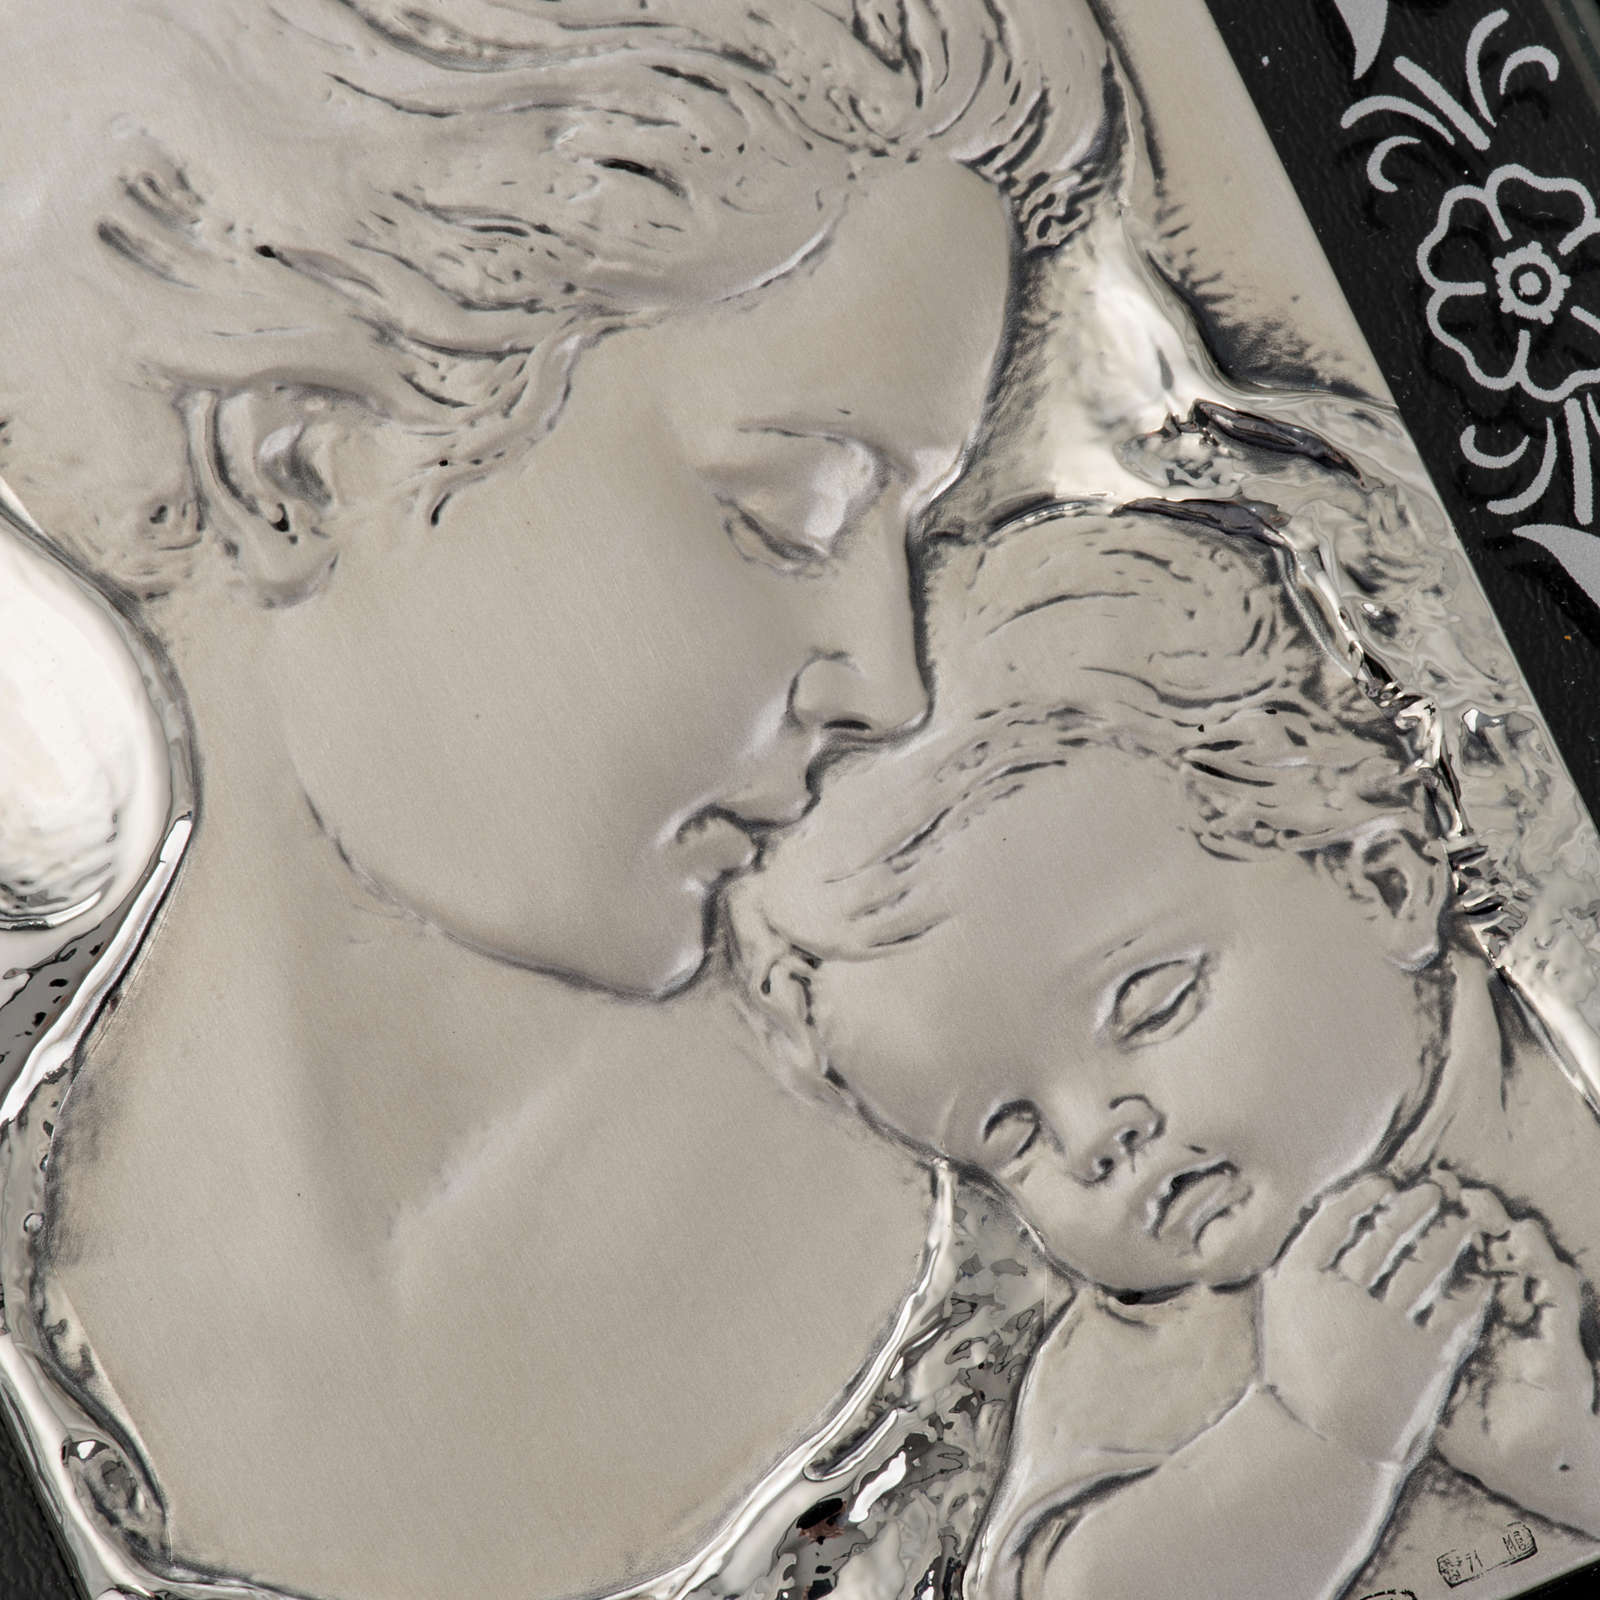 Bas-relief in silver, flowers, Mary and baby Jesus 4